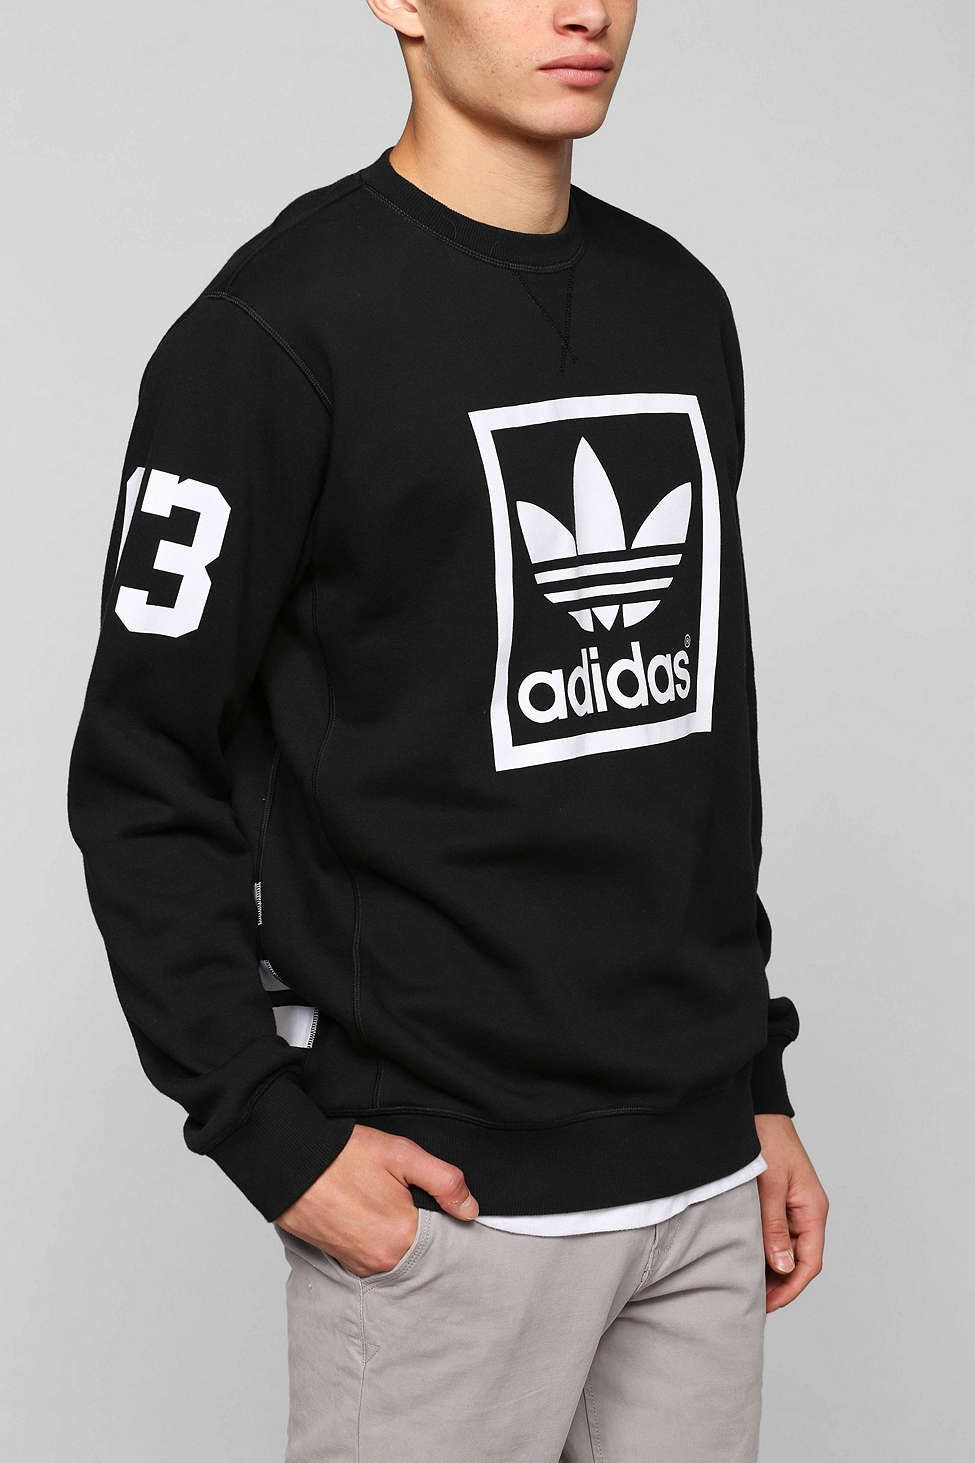 Adidas Black and white sweater. Adidas l Street Fashion 1950191020